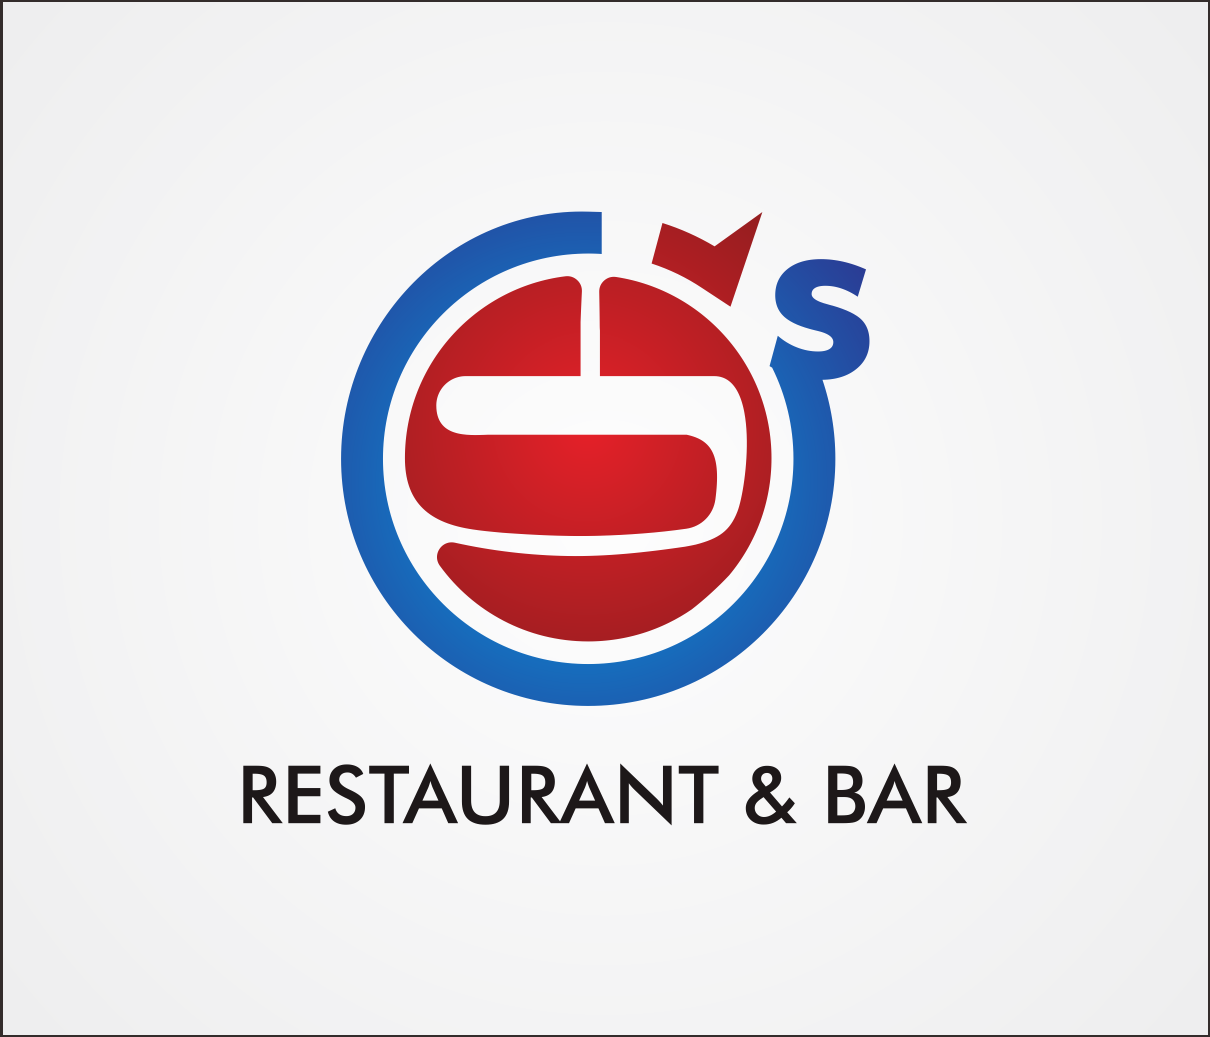 Logo Design by Armada Jamaluddin - Entry No. 122 in the Logo Design Contest Inspiring Logo Design for Cj's.